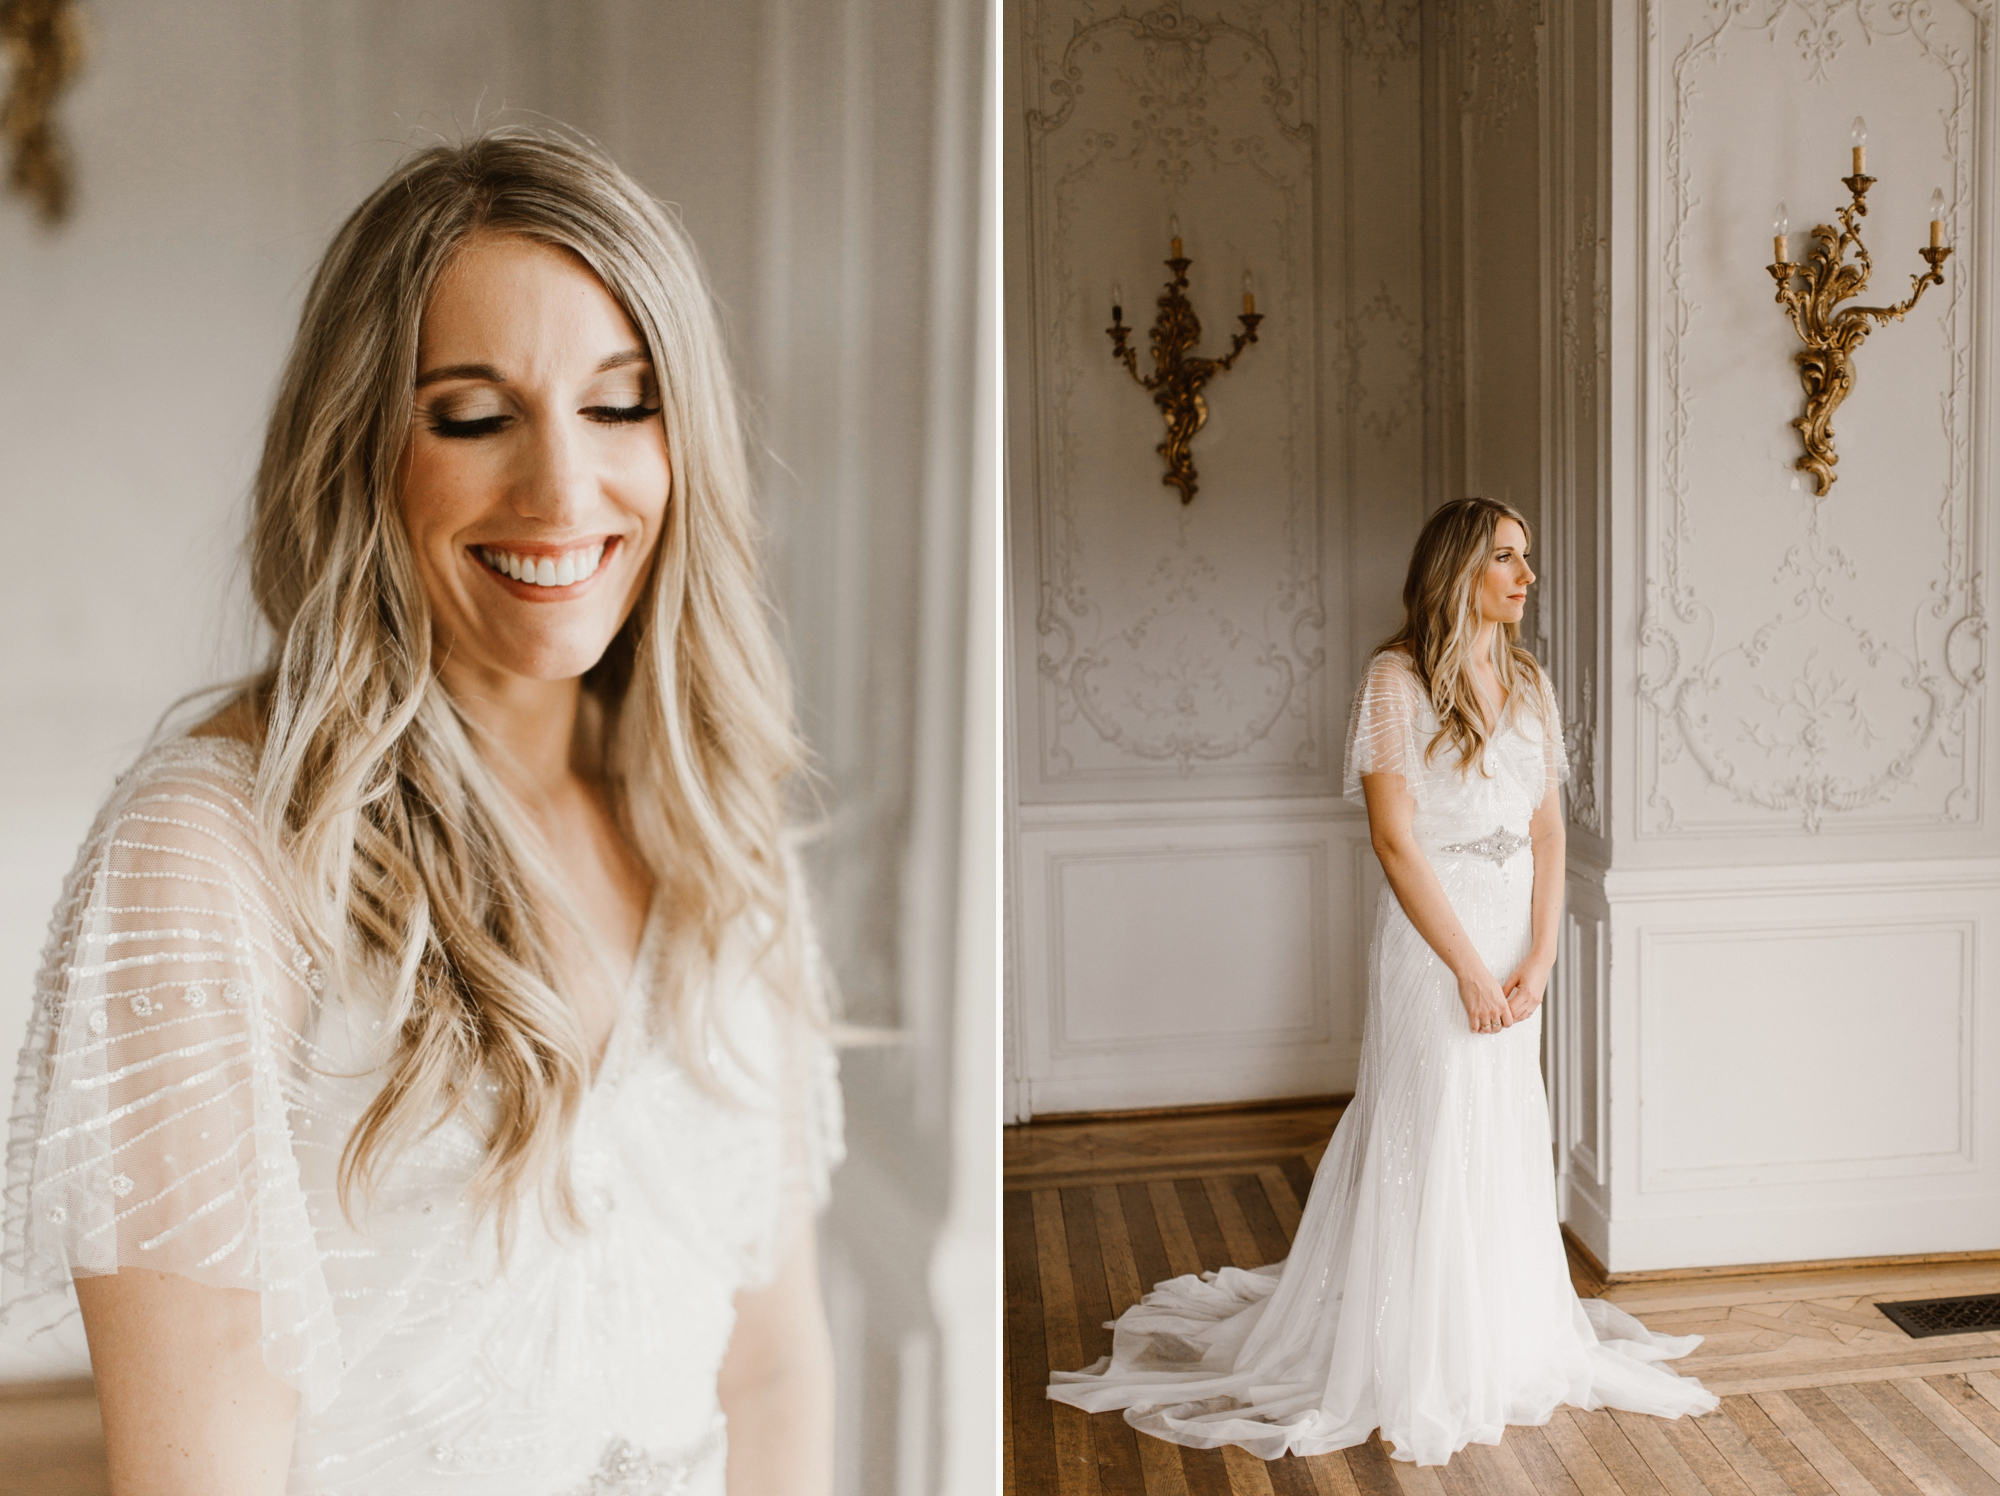 Cylburn Arboretum Wedding | by Baltimore, Maryland Photographer Kate Ann Photography | Elegant Boho Wedding Dress